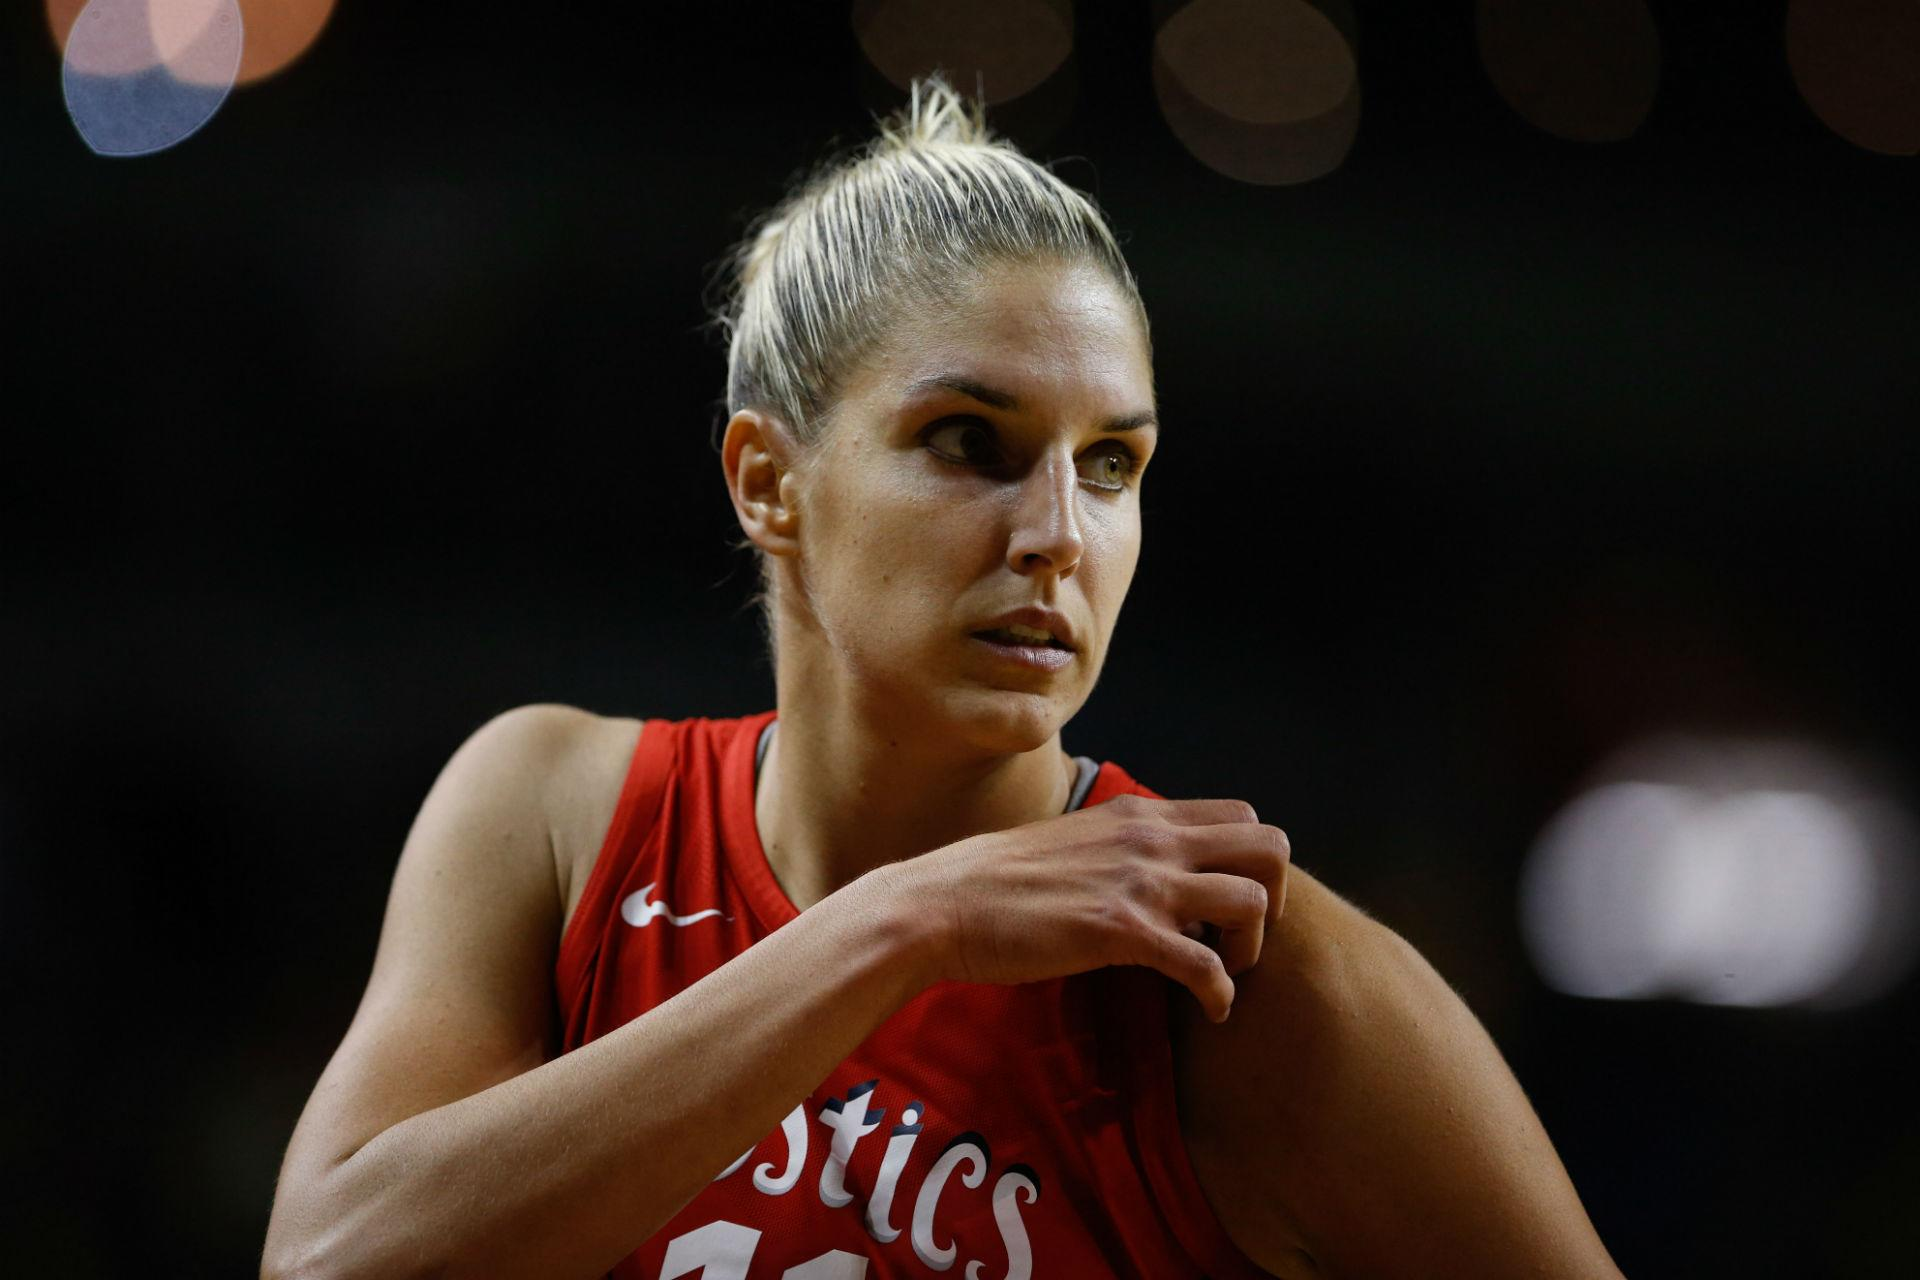 Recent travel arrangements have Mystics' forward Elena Delle Donne 'sick of it'